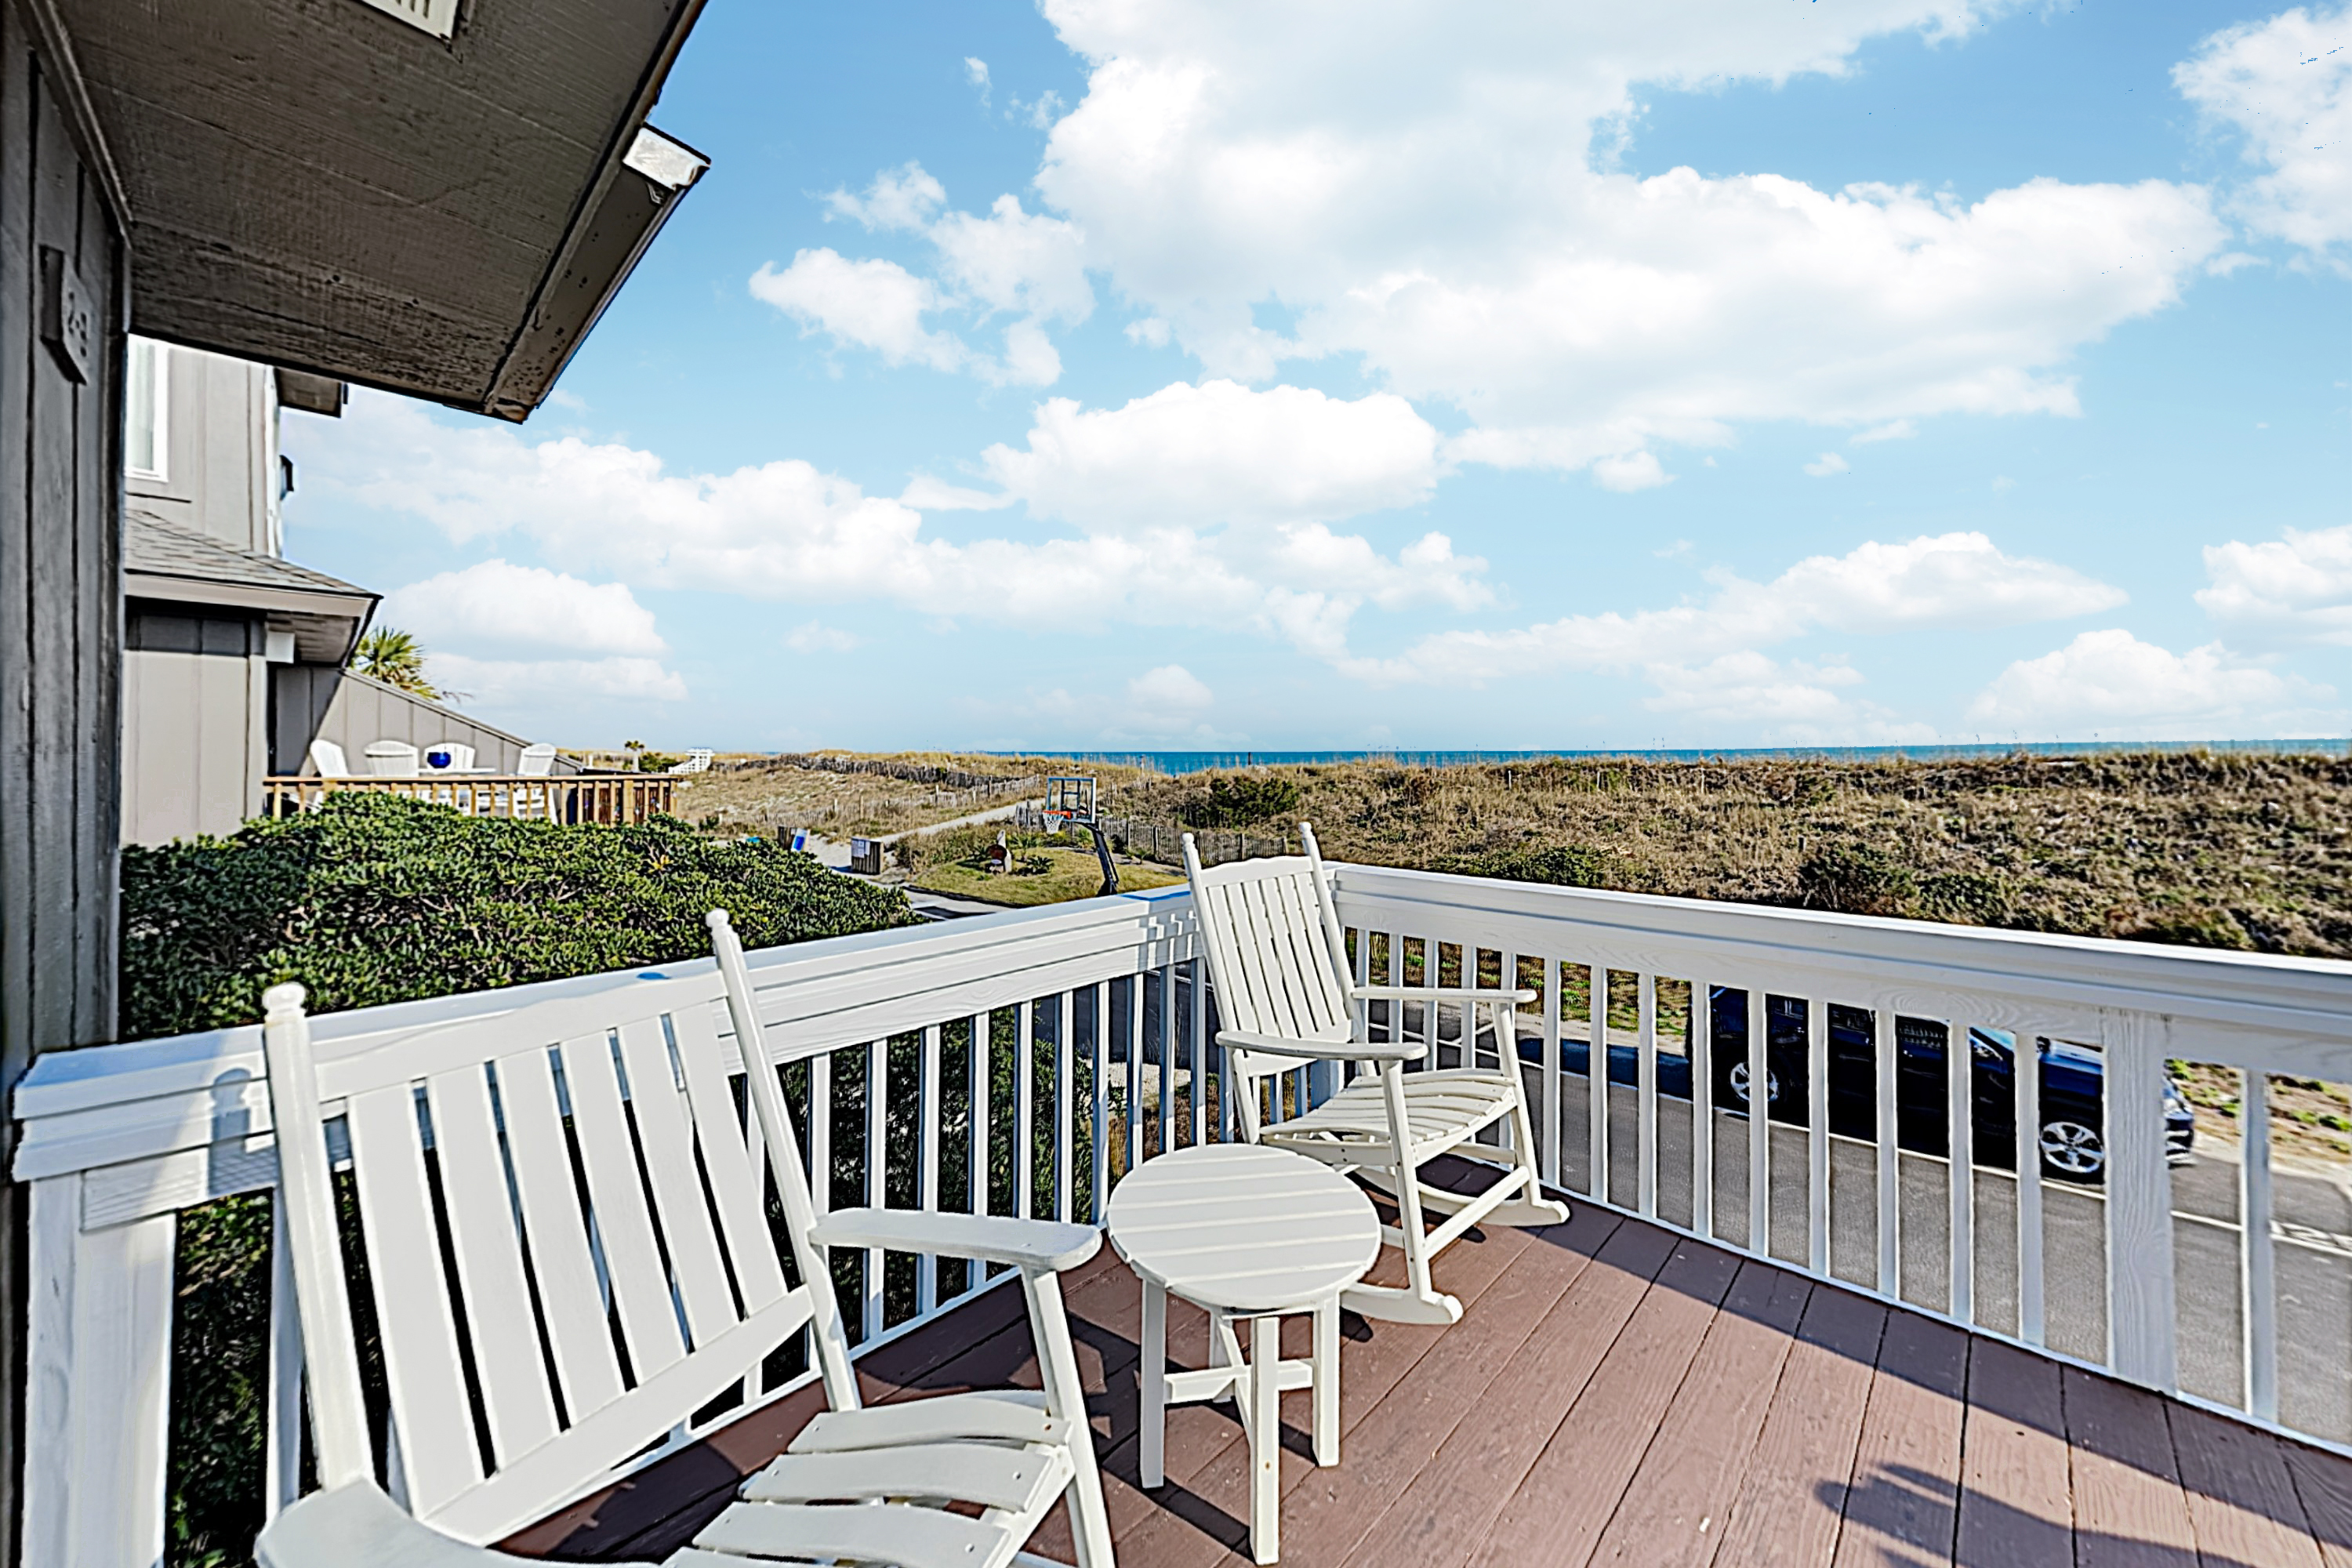 Wrightsville Beach NC Vacation Rental Welcome to Wrightsville